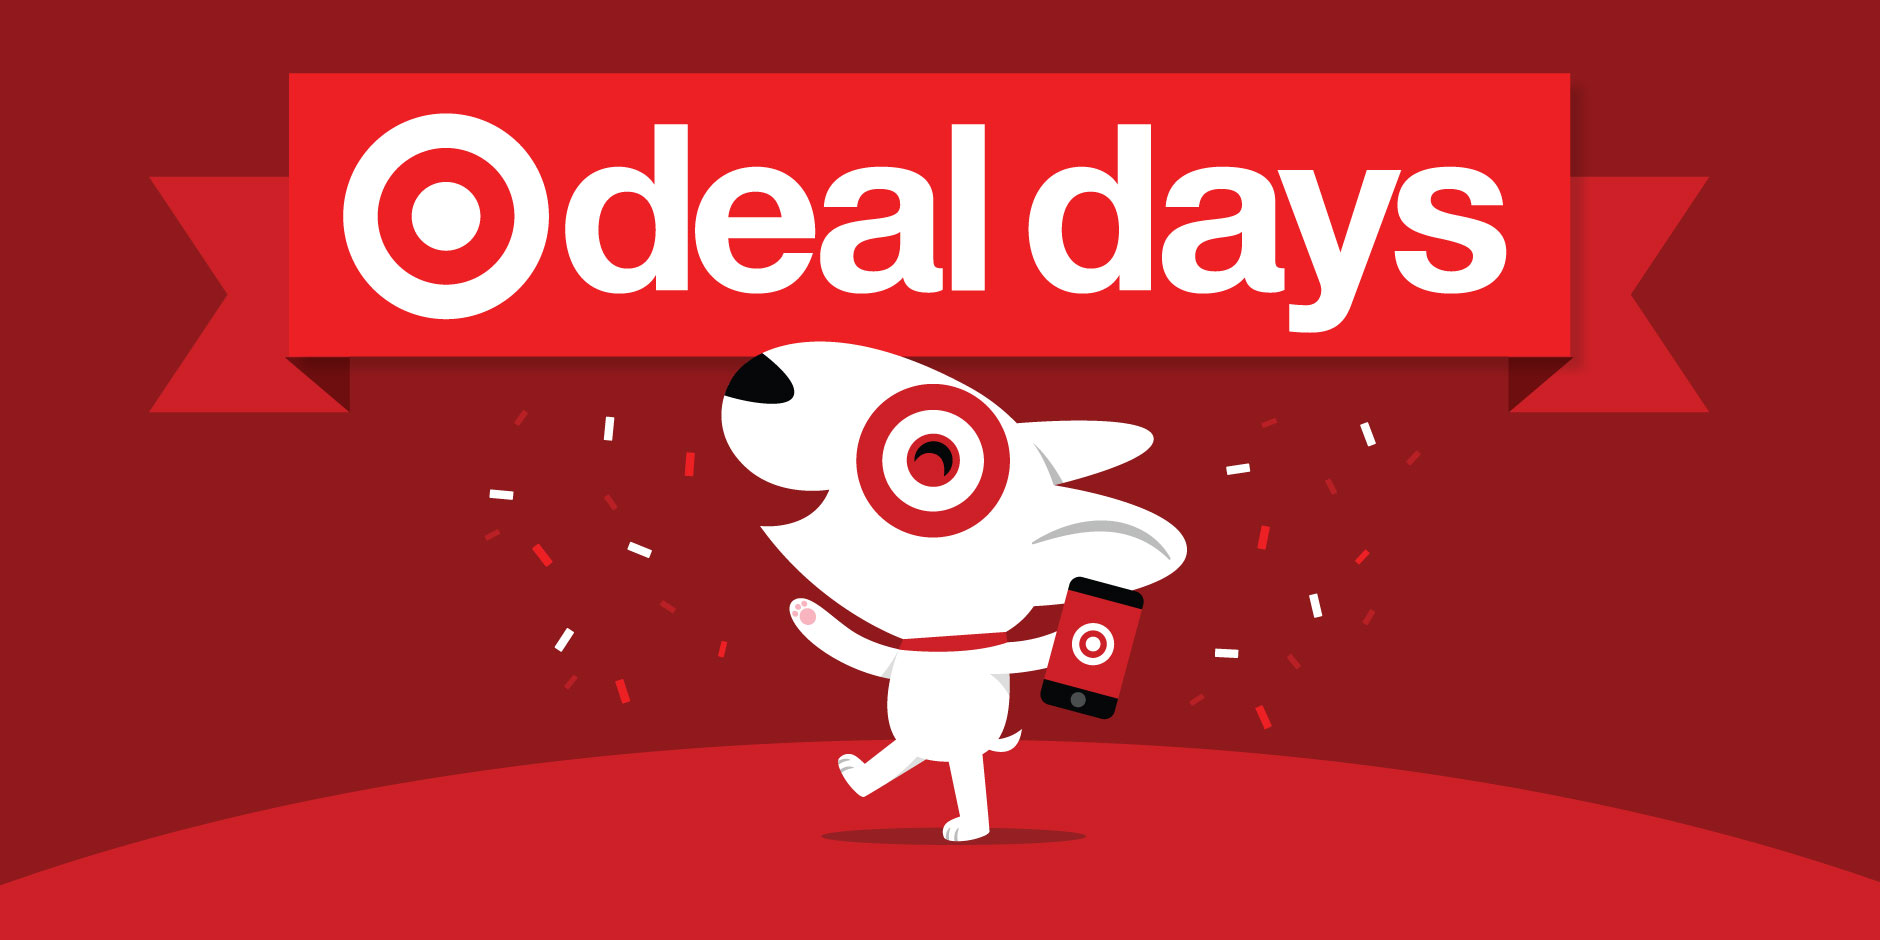 Deal Days Is Back Oct 13 And 14 Better Than Ever And Just The Start Of Target S Season Long Savings